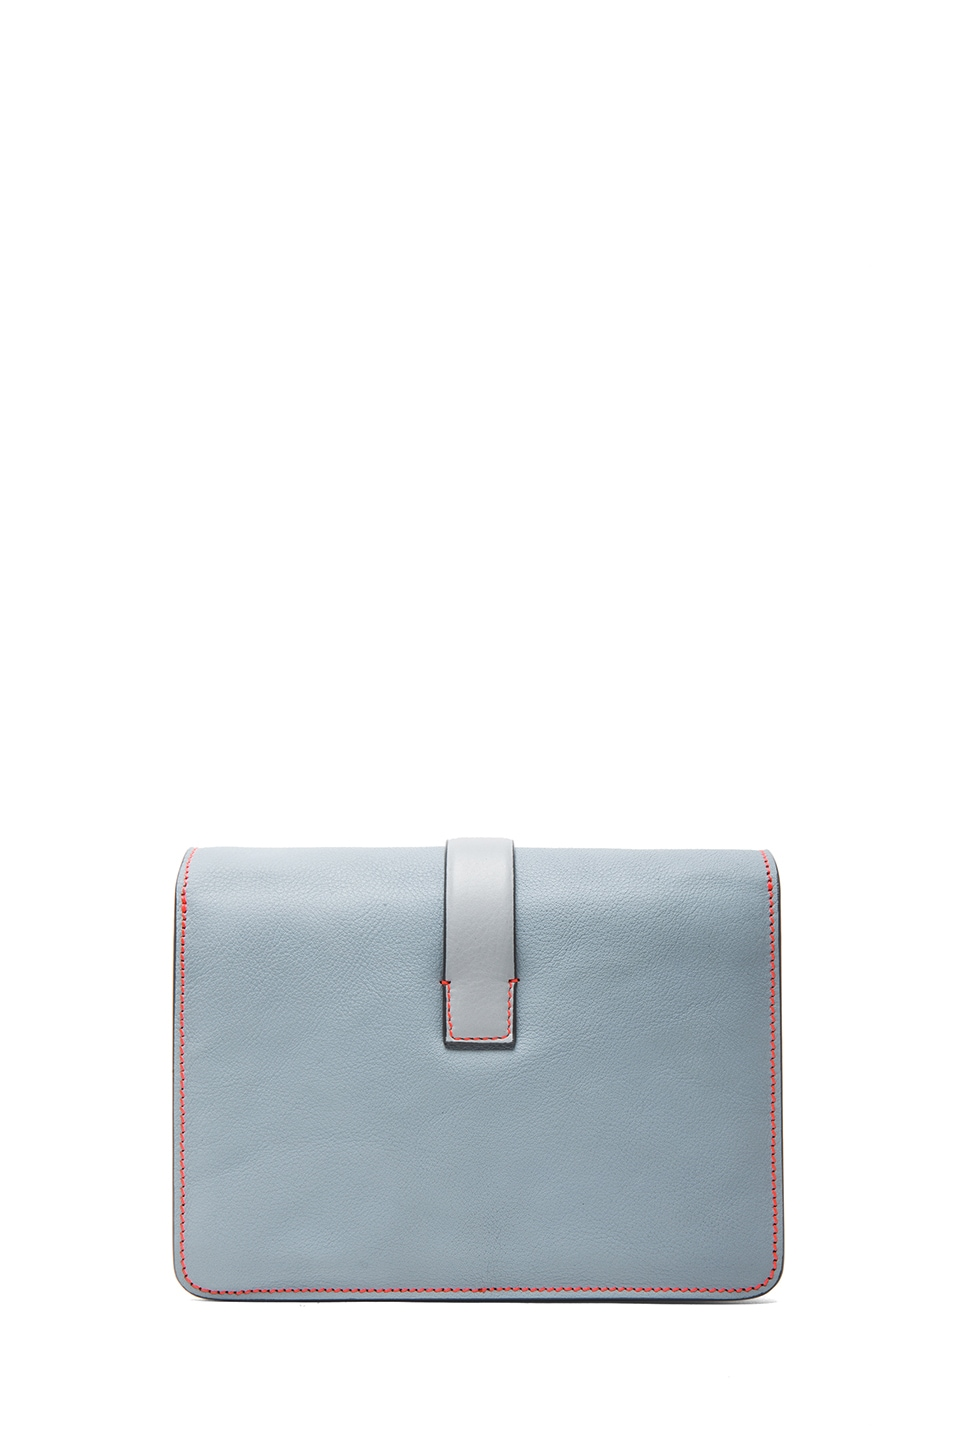 Image 2 of Victoria Beckham Mini Satchel in Rainy Day